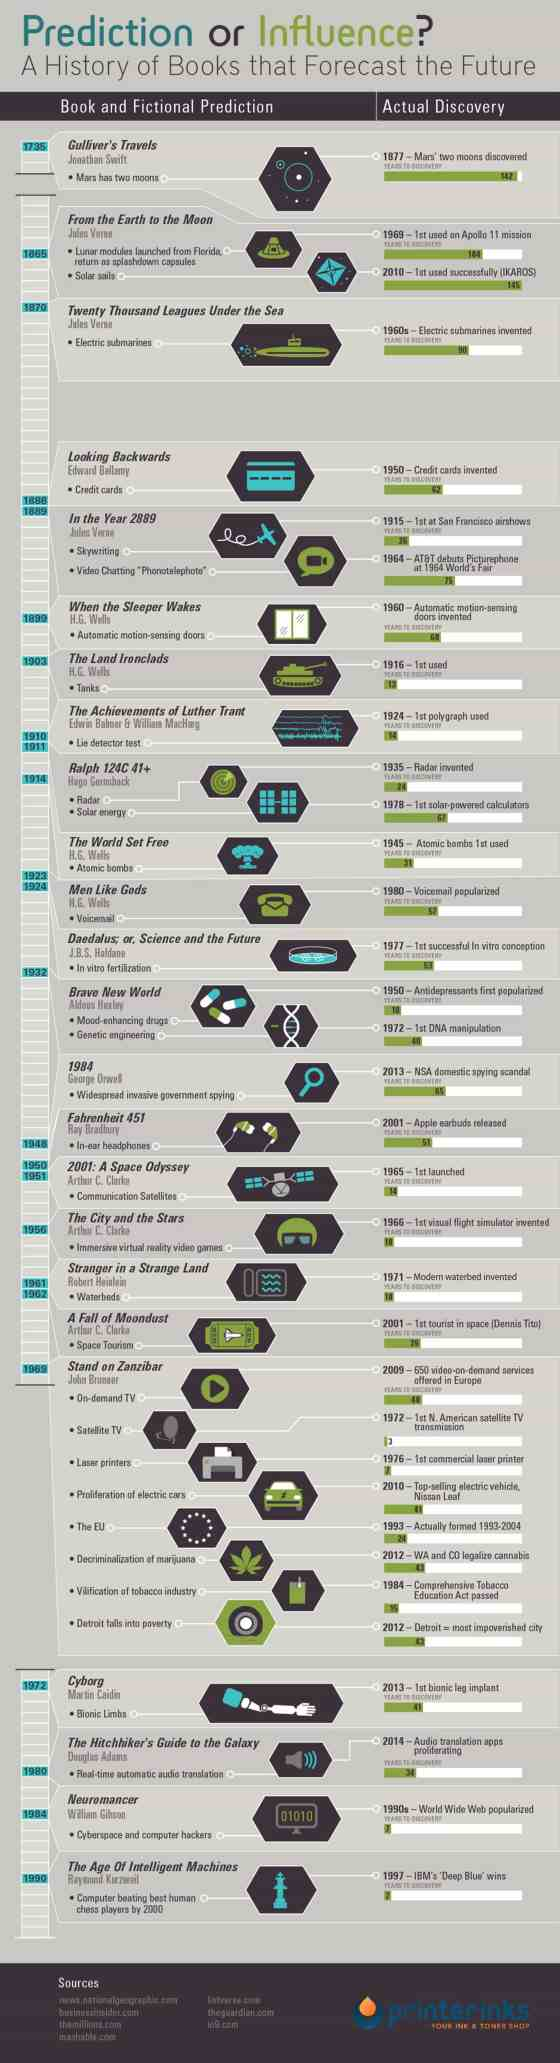 Infographic: 24 Books that Predicted the Future Infographic